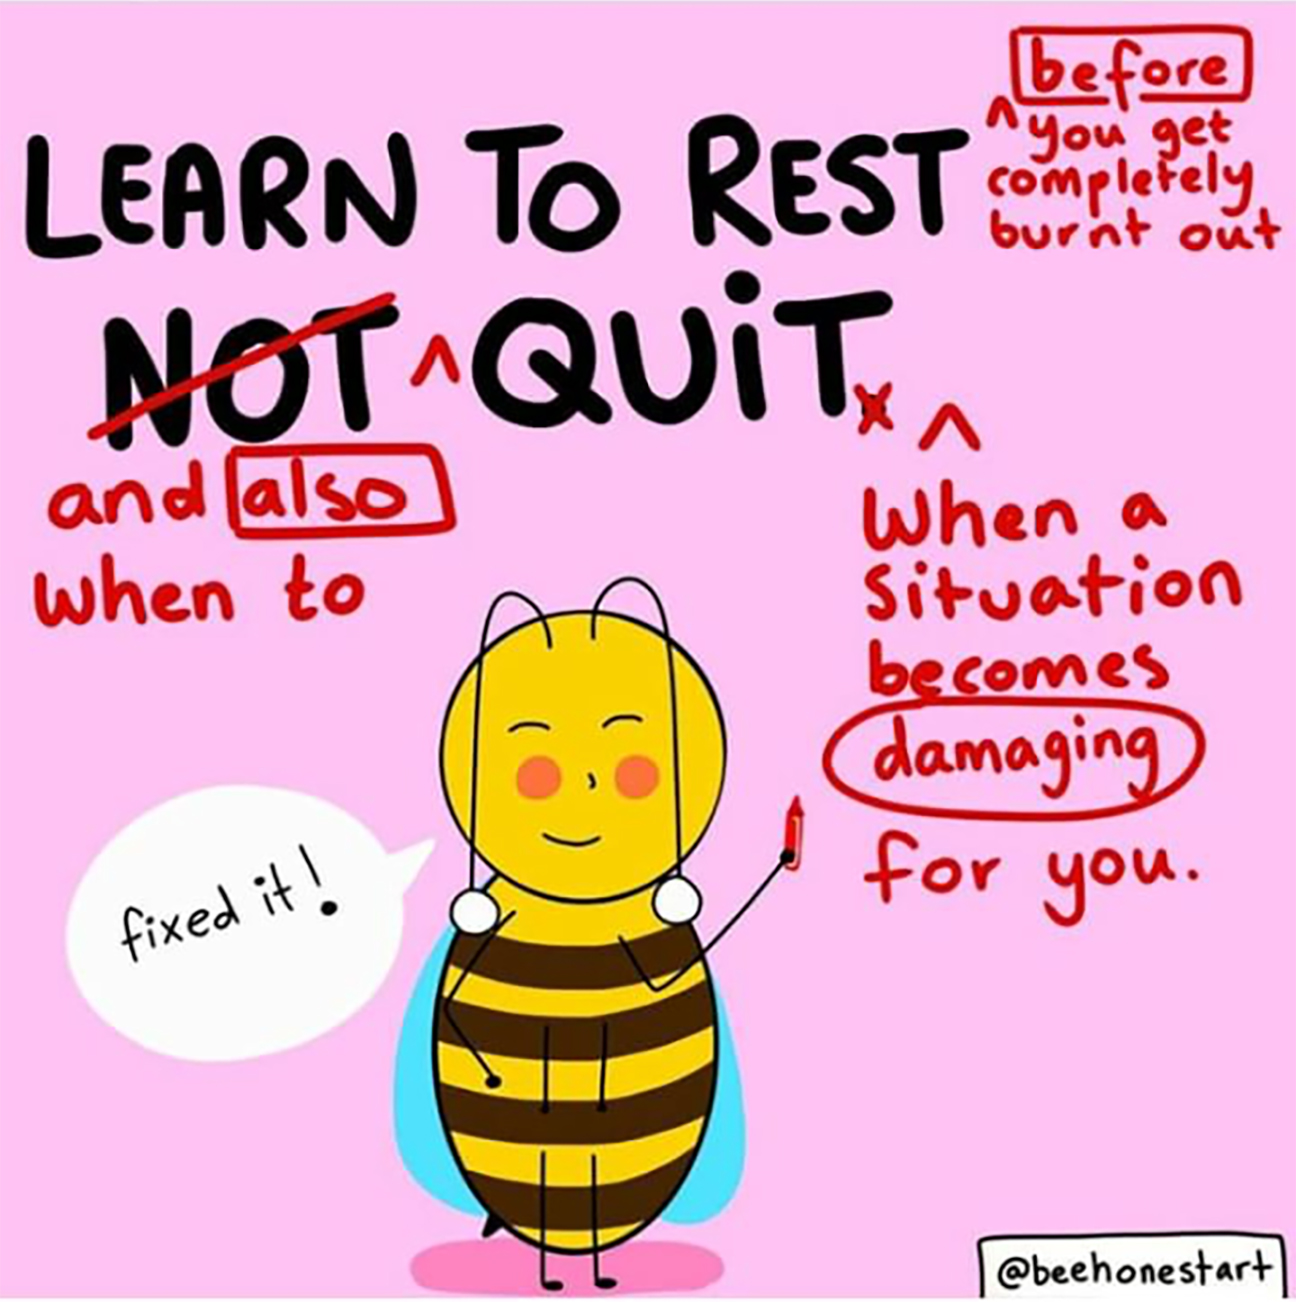 learntorest